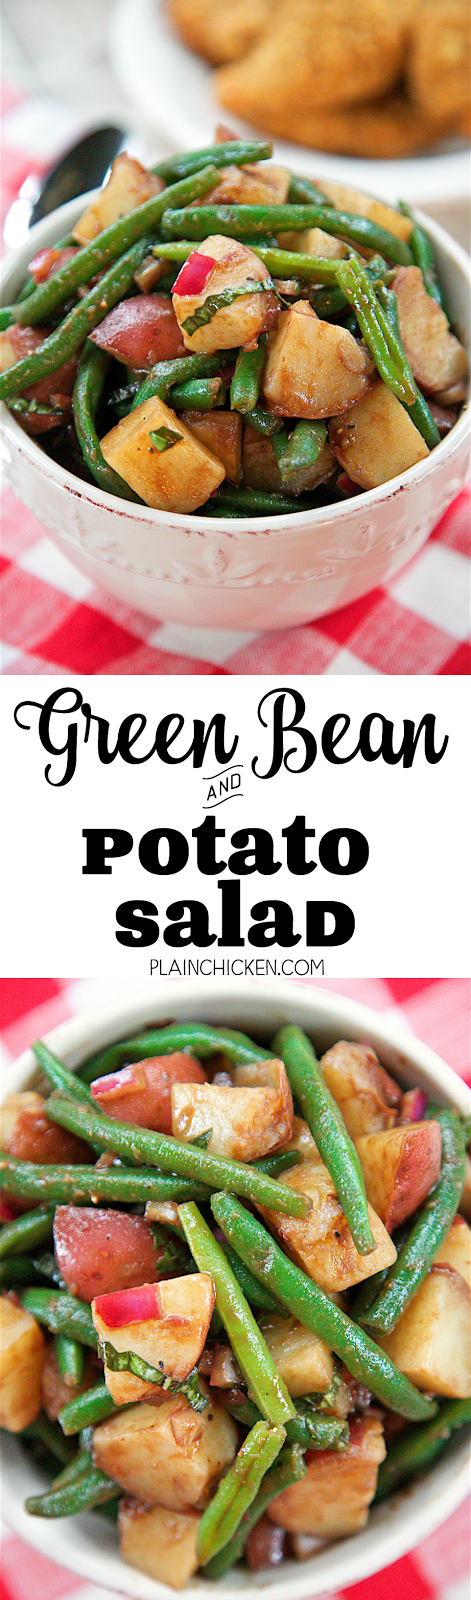 Green Bean and Potato Salad with Balsamic Vinaigrette - takes about 20 minutes to make! Can serve warm or cold. Green beans, red potatoes, red onion, basil, olive oil, balsamic vinegar, dijon mustard, lemon juice, worcestershire sauce and garlic. Great side dish for summer cookouts! Everyone loved it!